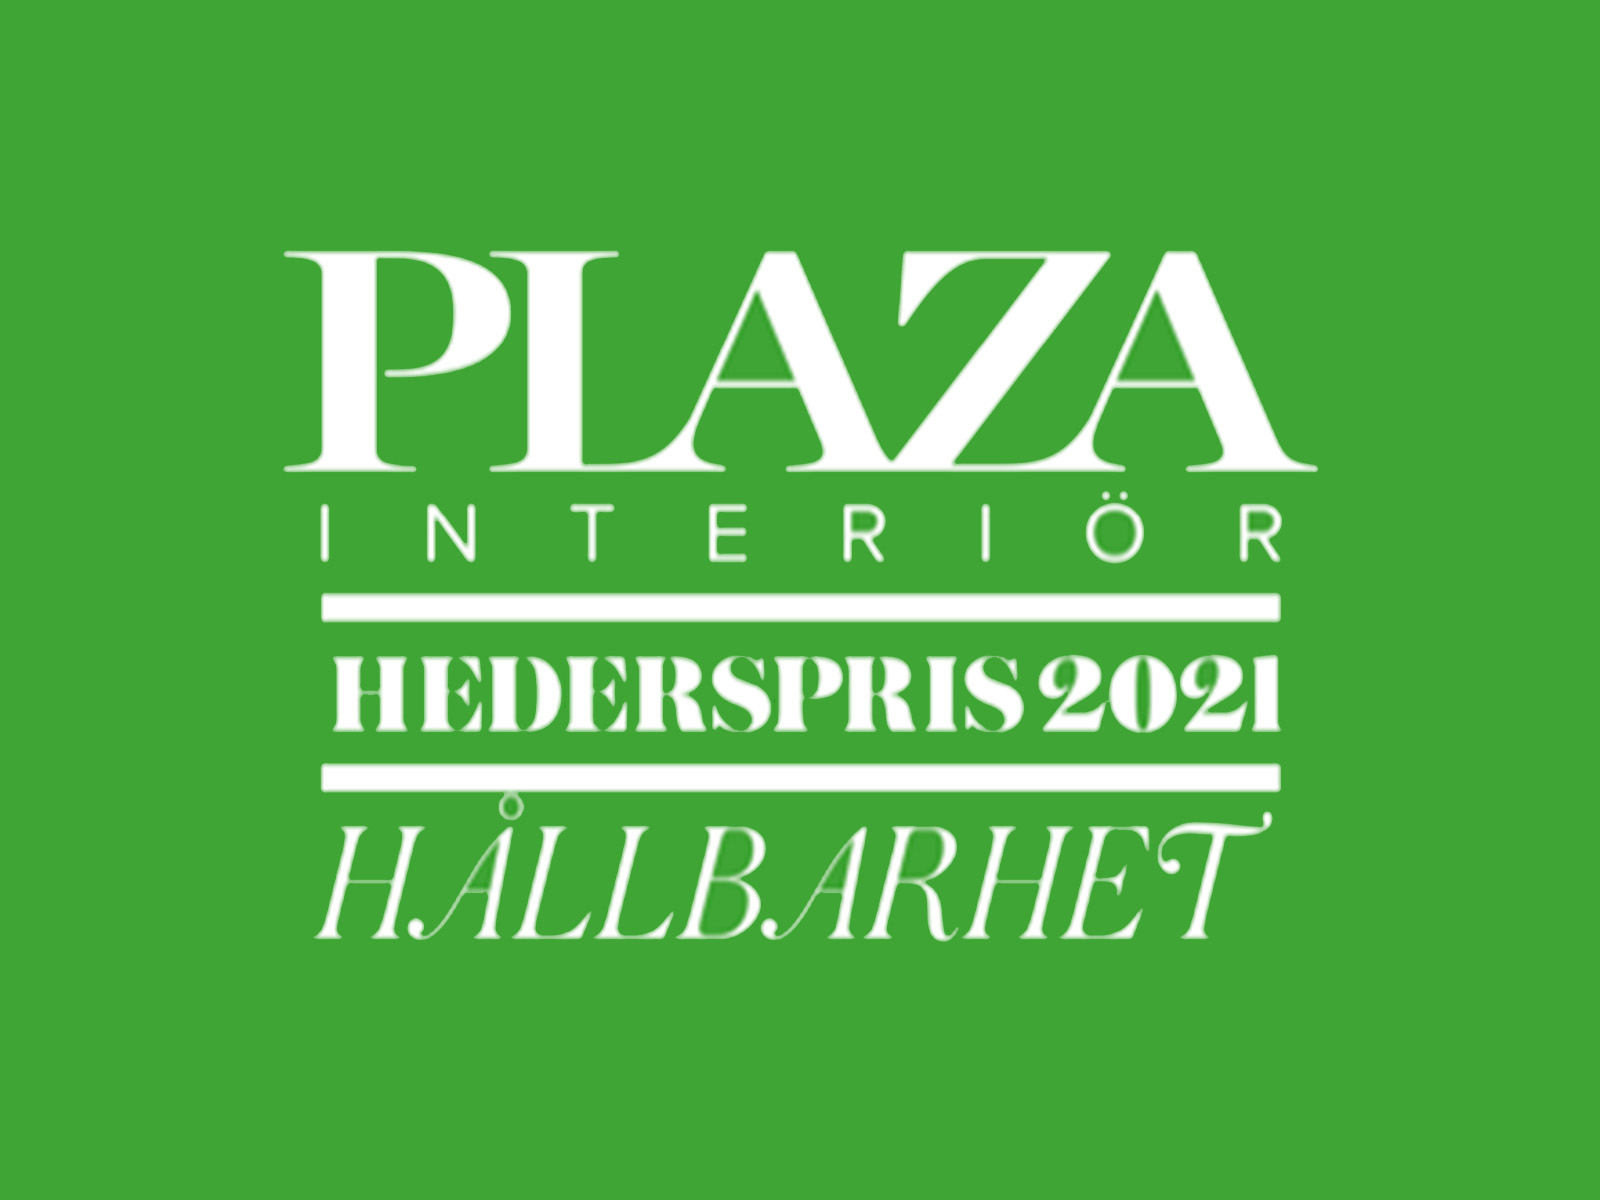 Plaza Interior's Award of Honour 2021 - Swedish Award of Honour 2021  for Sustainability with our collection of hooks and knobs for Habo Selection casted in recycled brass. 